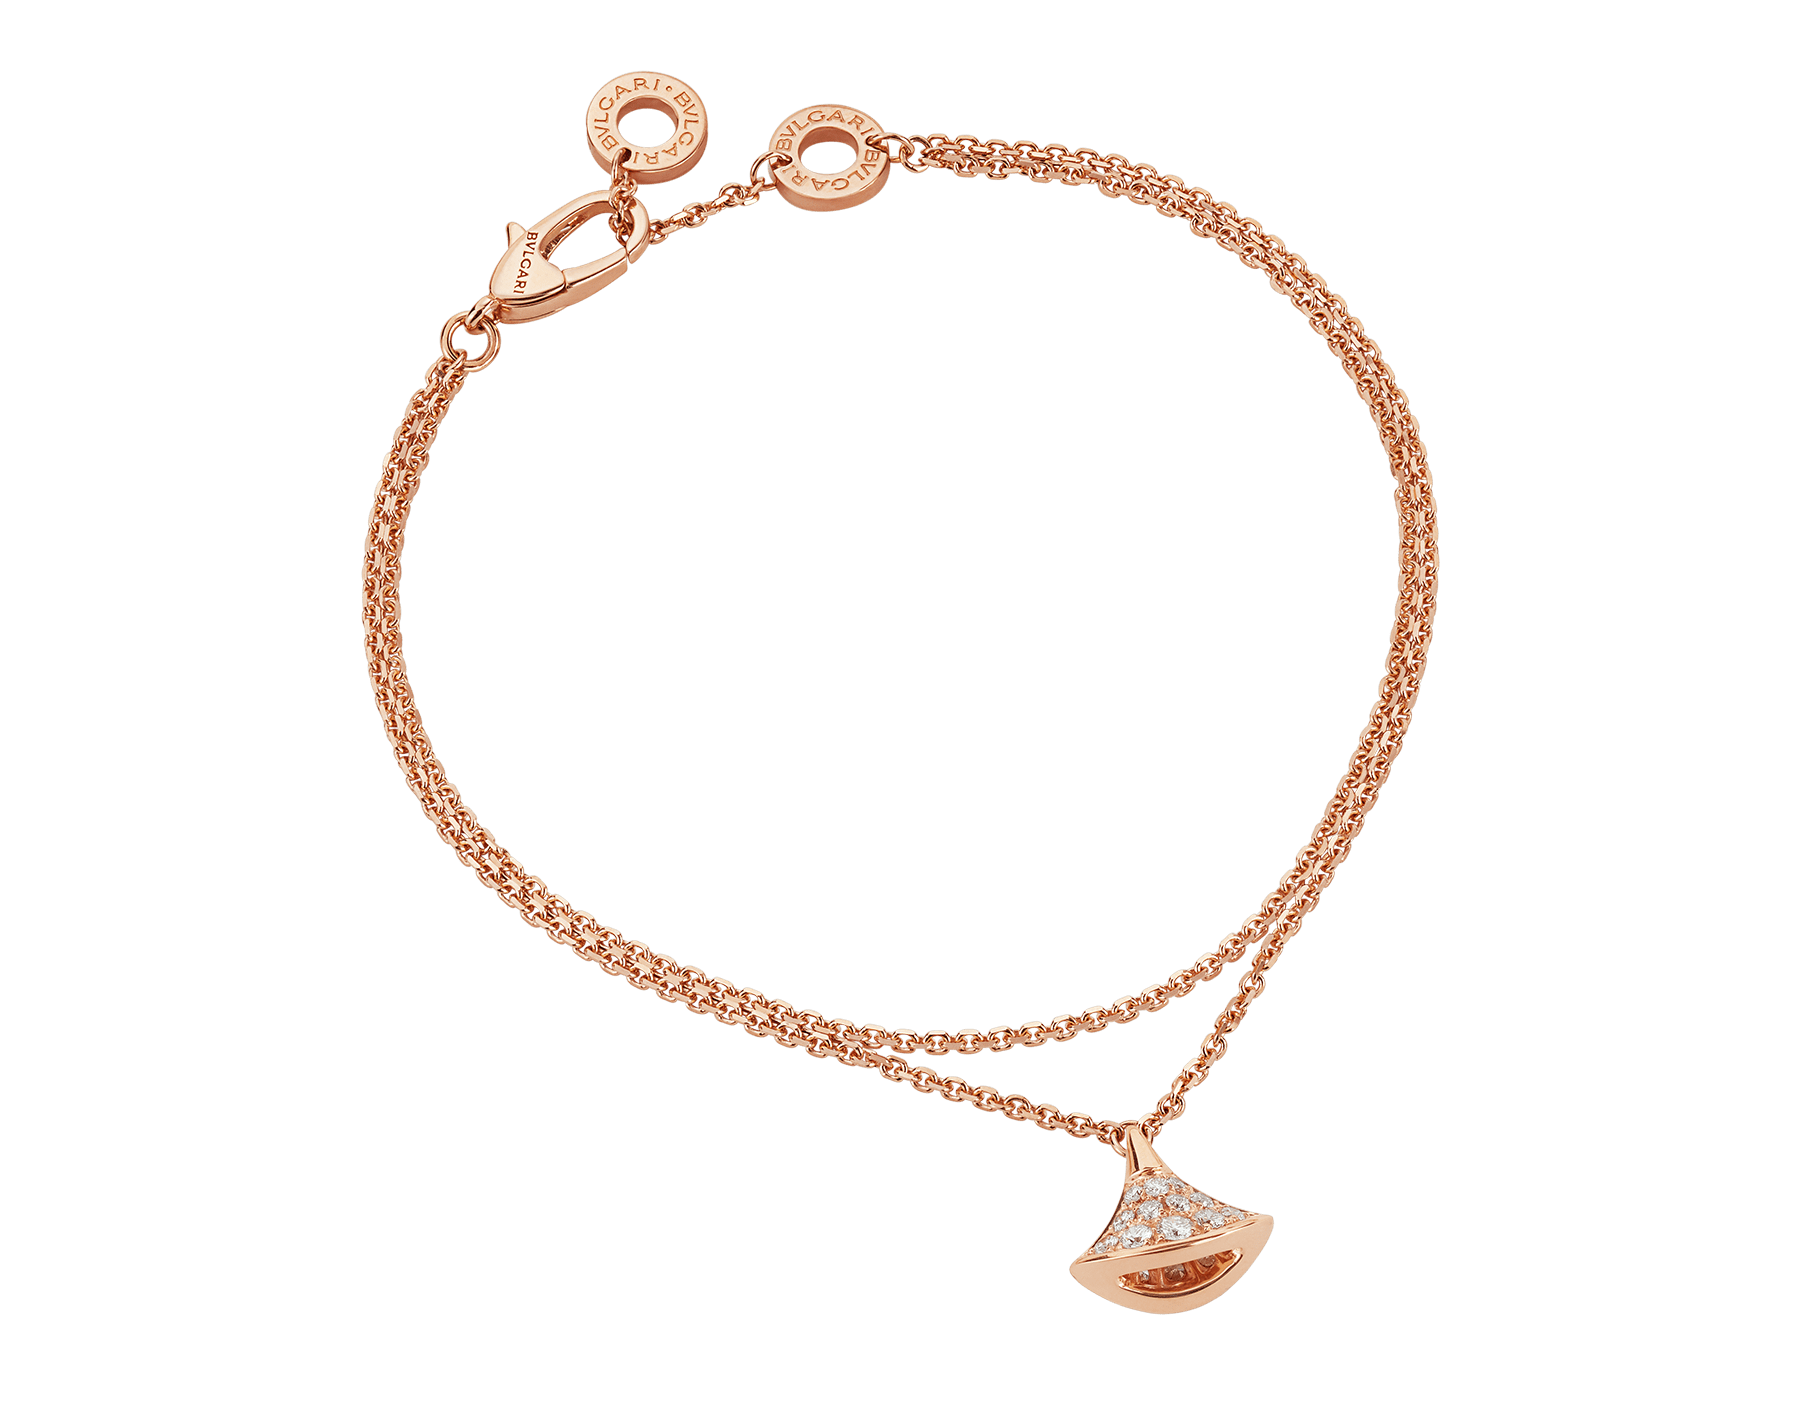 DIVAS' DREAM bracelet in 18 kt rose gold with pendant in full pavé diamonds. BR857363 image 1